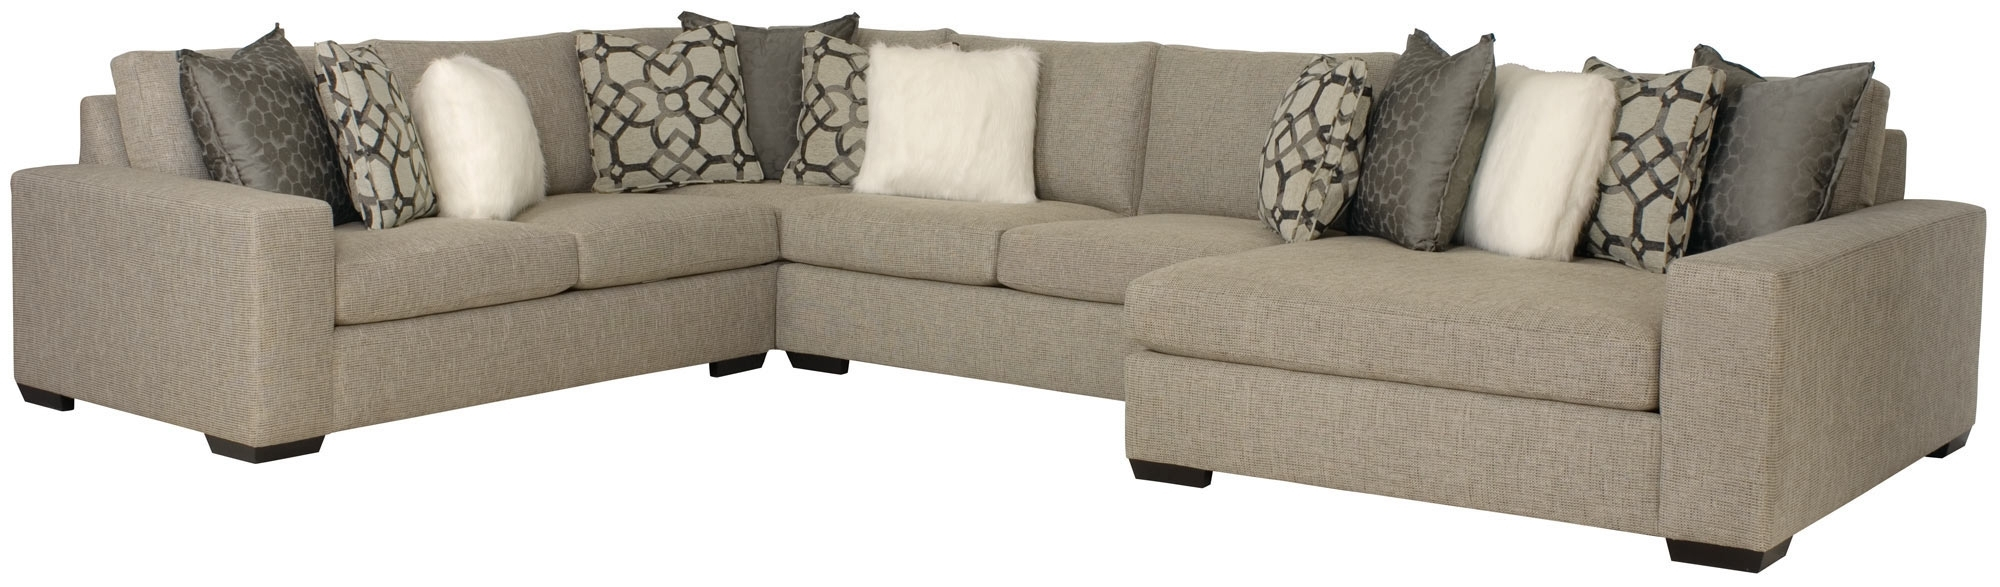 Bernhardt For Orlando Sectional Sofas (View 3 of 20)